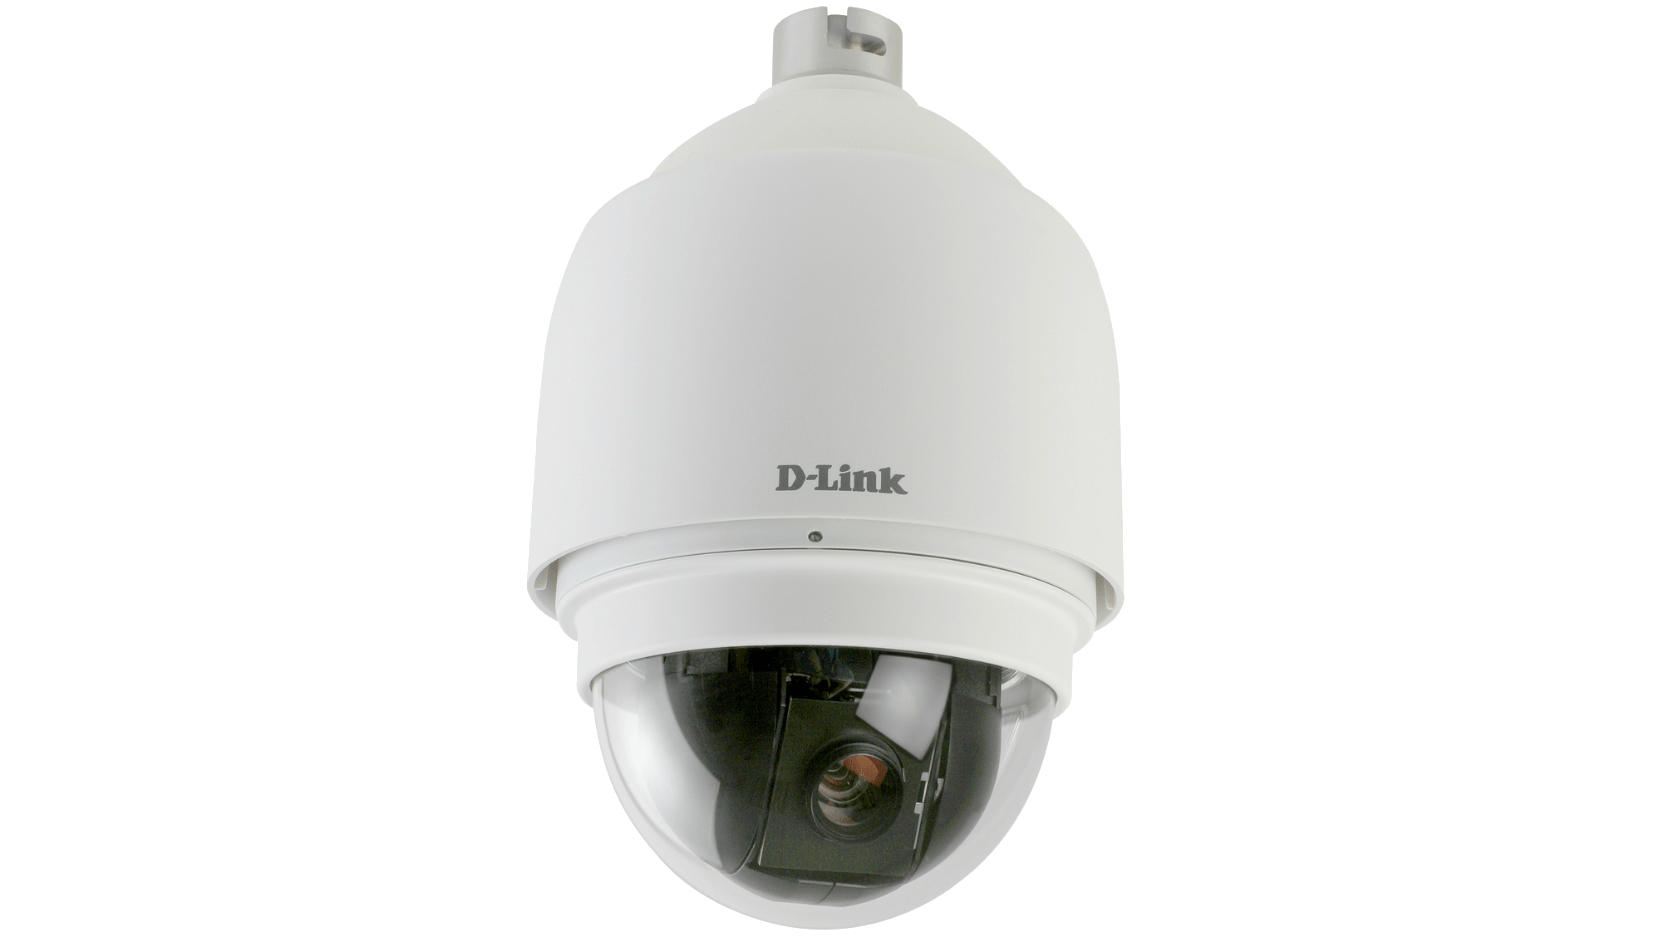 Camera Exterieur Mydlink Dcs-6815 Outdoor 18x Wdr Day/night Speed Dome Network